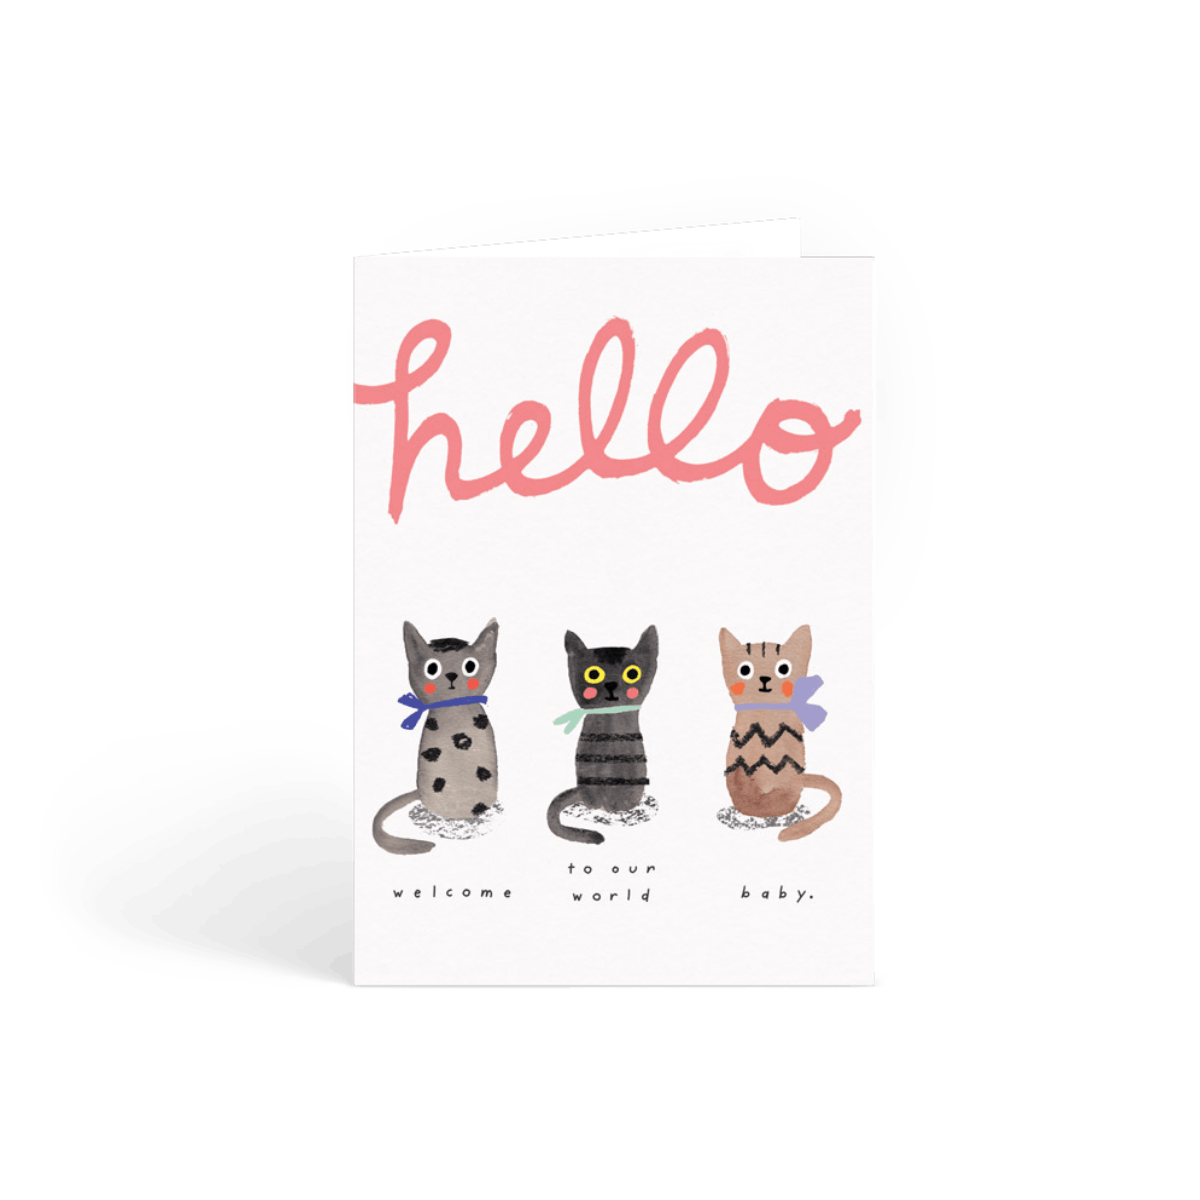 Https%3a%2f%2fwww.papier.com%2fproduct image%2f24272%2f2%2fthree little kittens 6074 front 1498121458.png?ixlib=rb 1.1